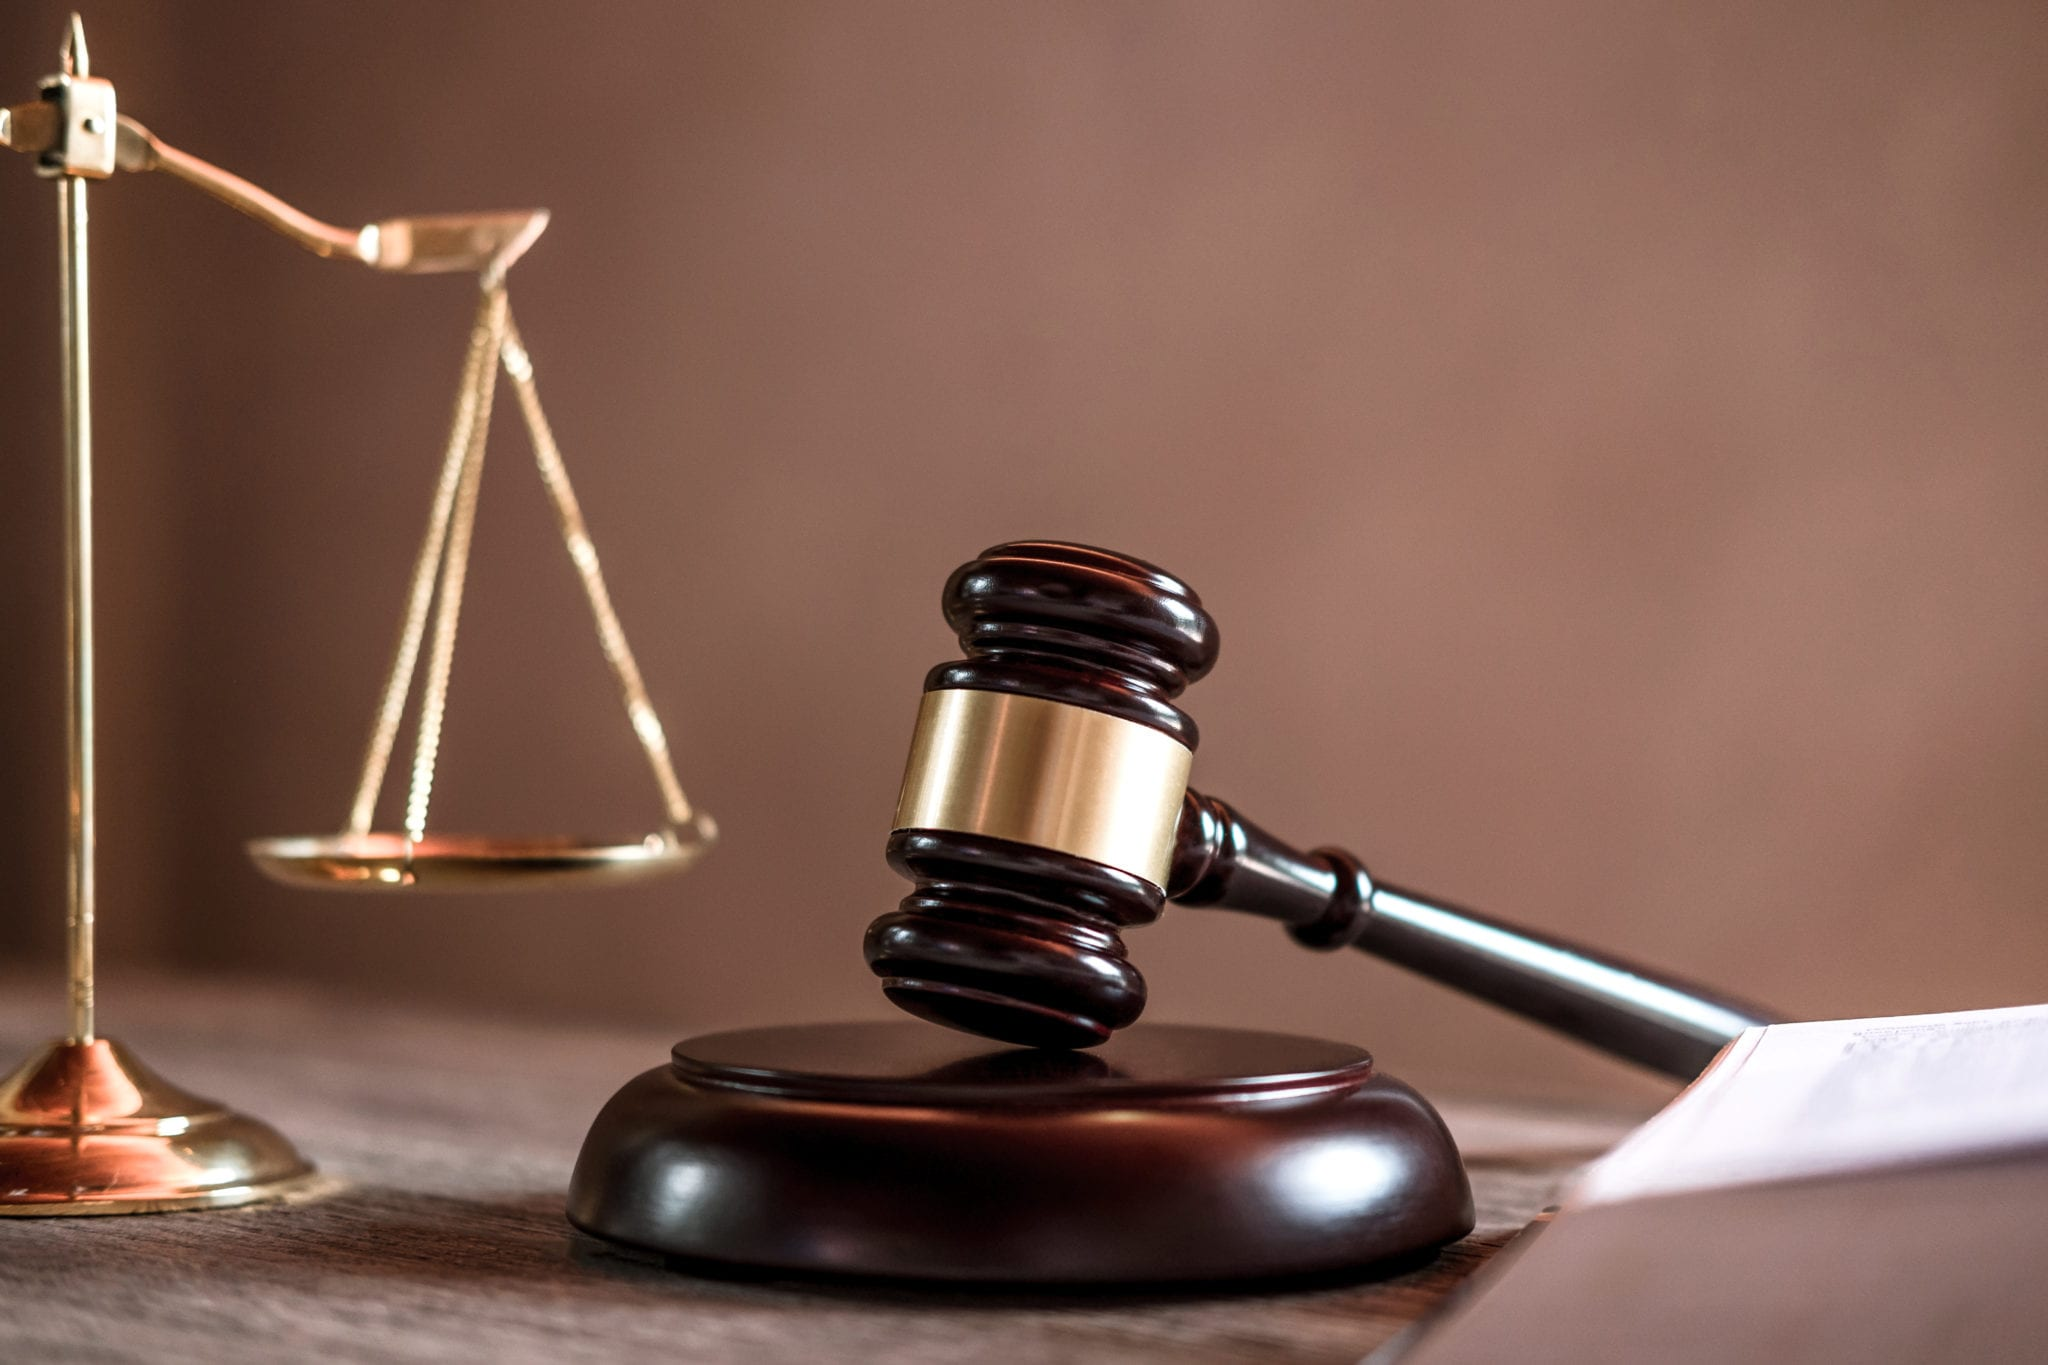 Nigerian Judge Throws Out Case Against 47 Men For Homosexuality!